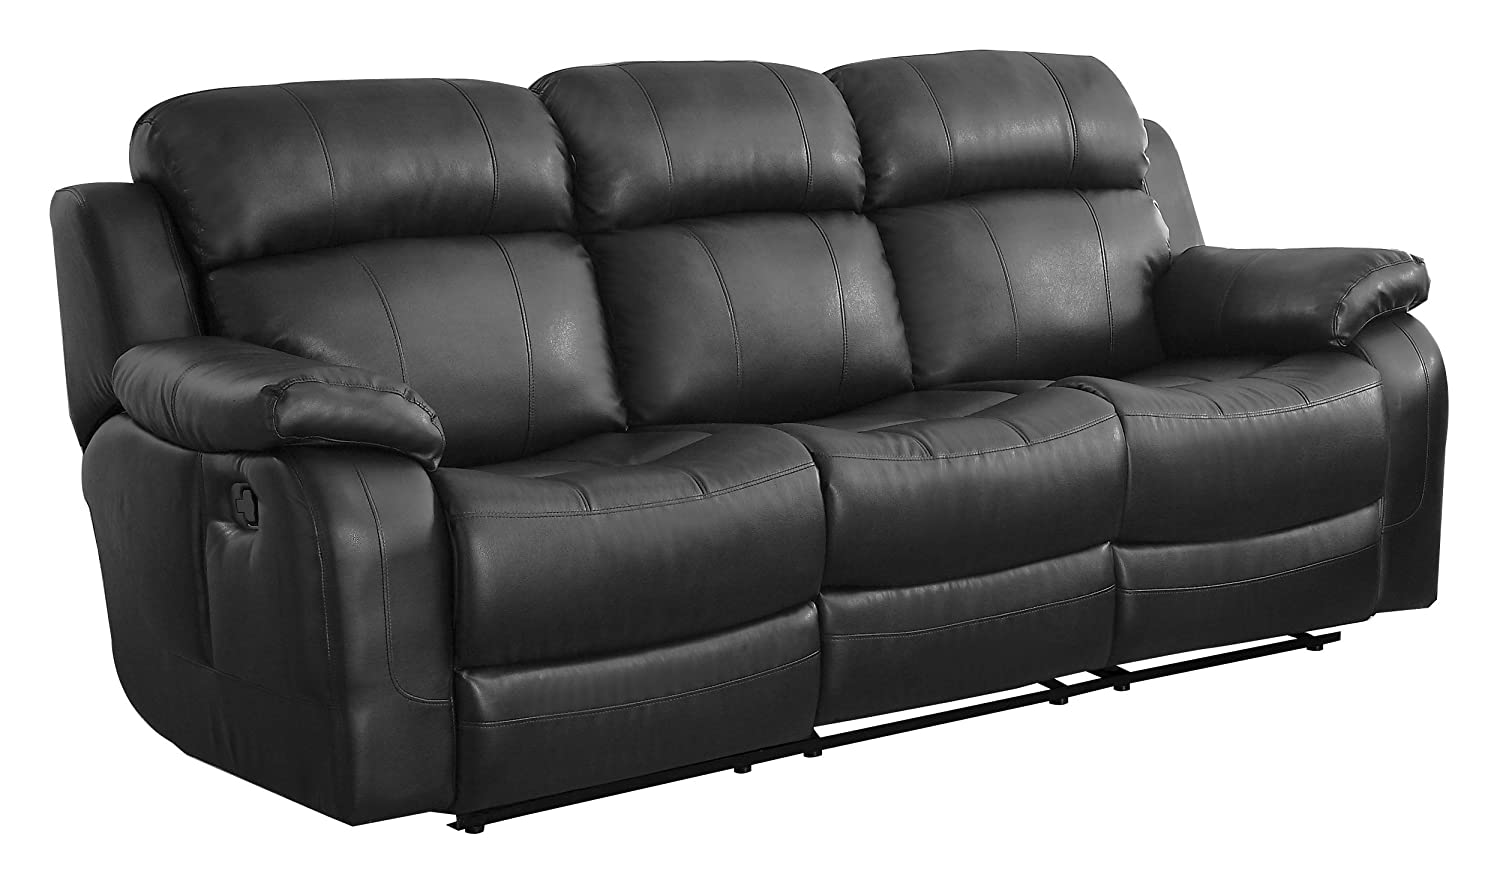 Amazon.com: Homelegance Marille Reclining Sofa W/ Center Console Cup  Holder, Black Bonded Leather: Kitchen U0026 Dining